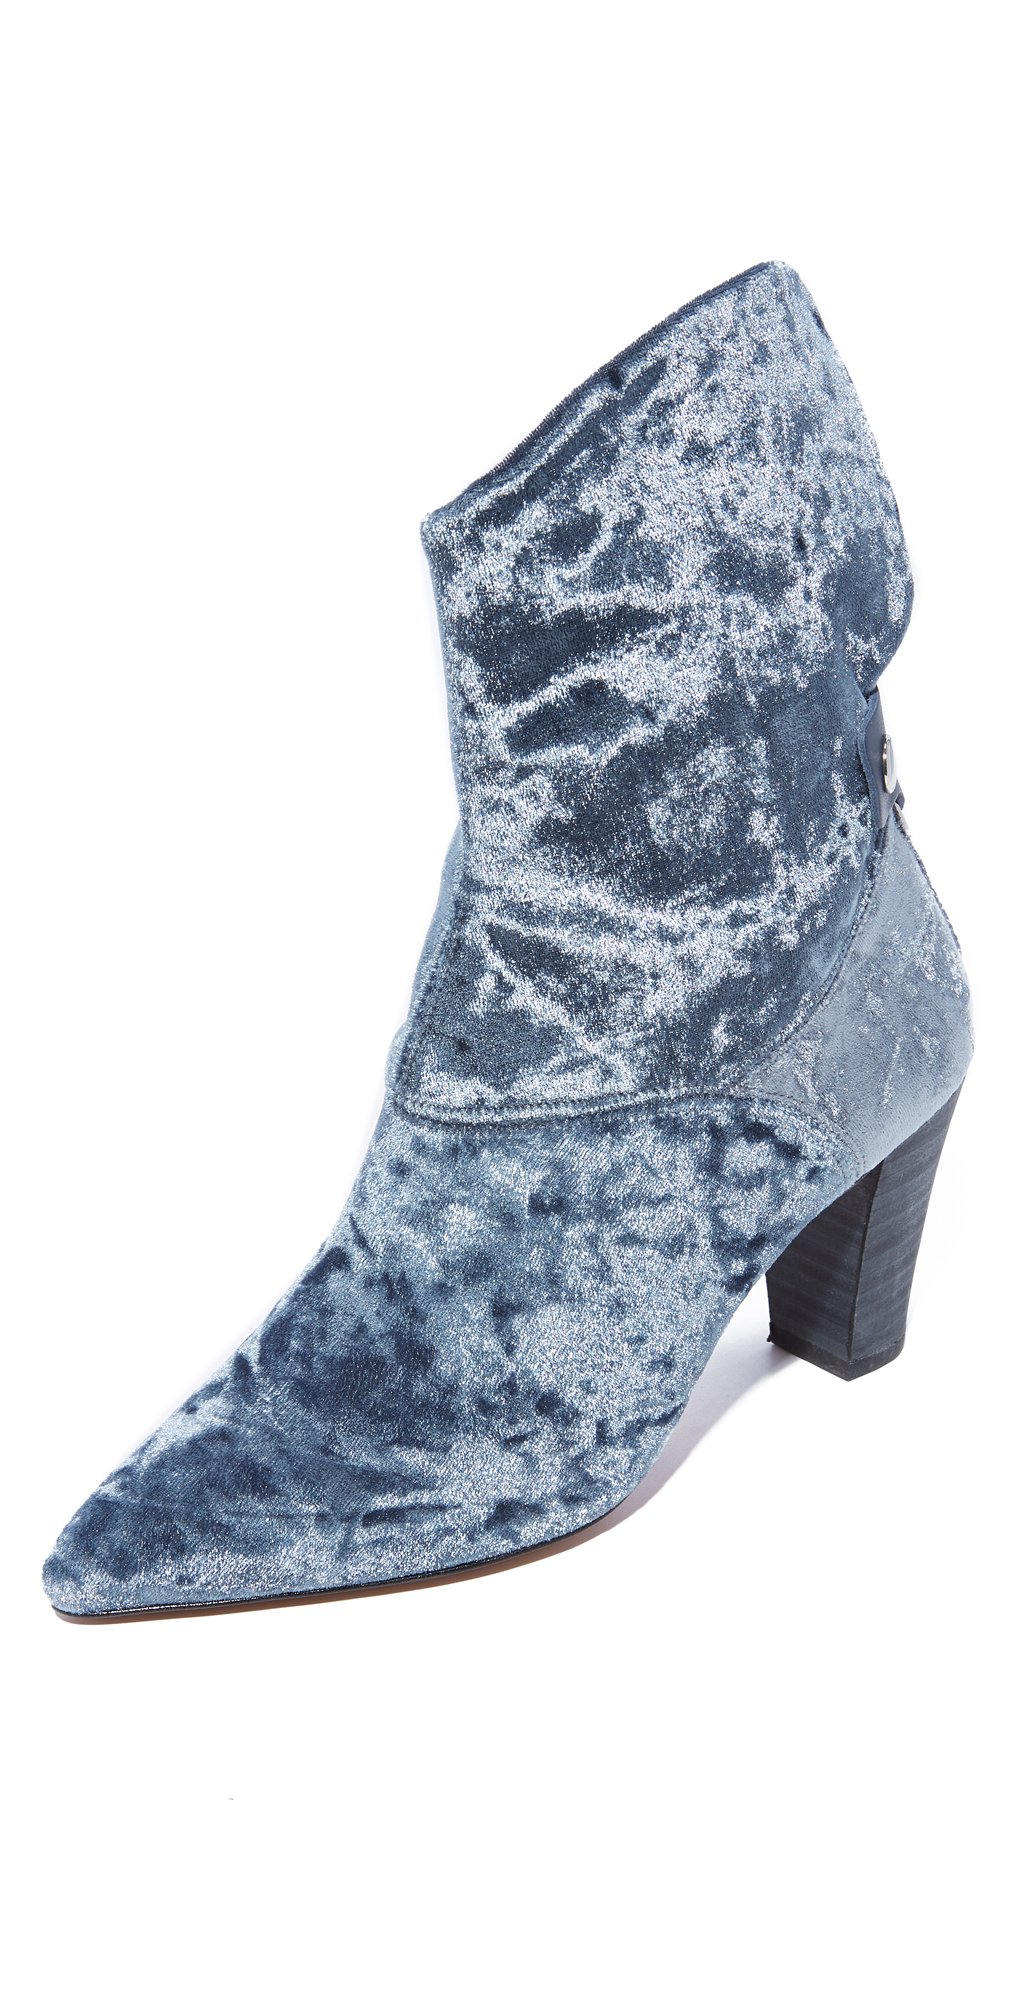 Moonlight Heel Booties Free People